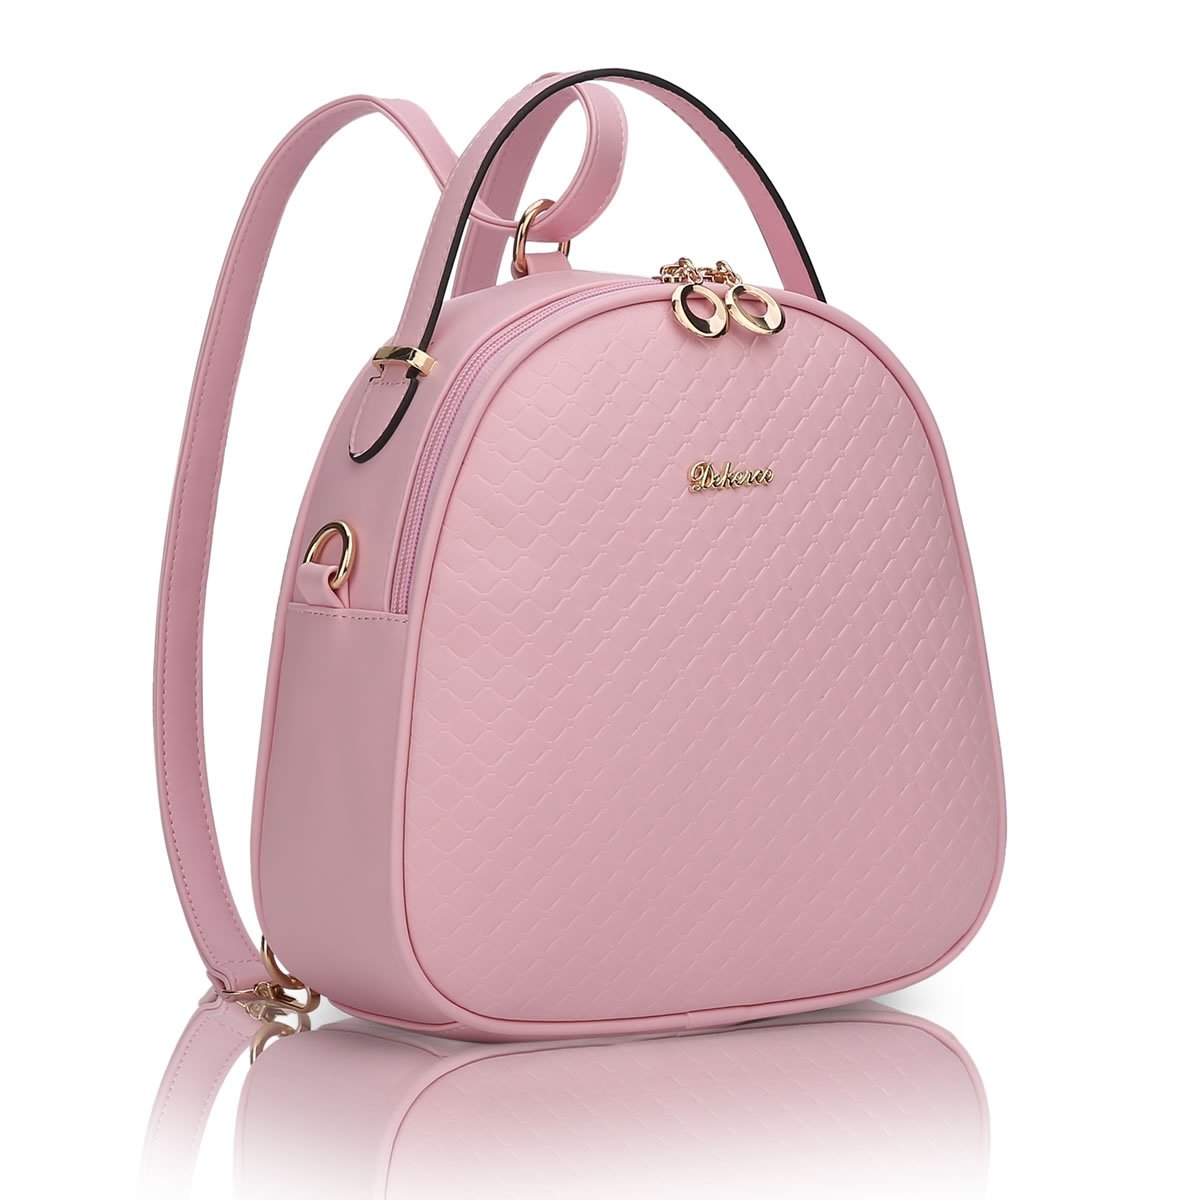 MSZYZ students in spring and summer all-match simple small backpack Shoulder Messenger Bag,Pink,262611CM